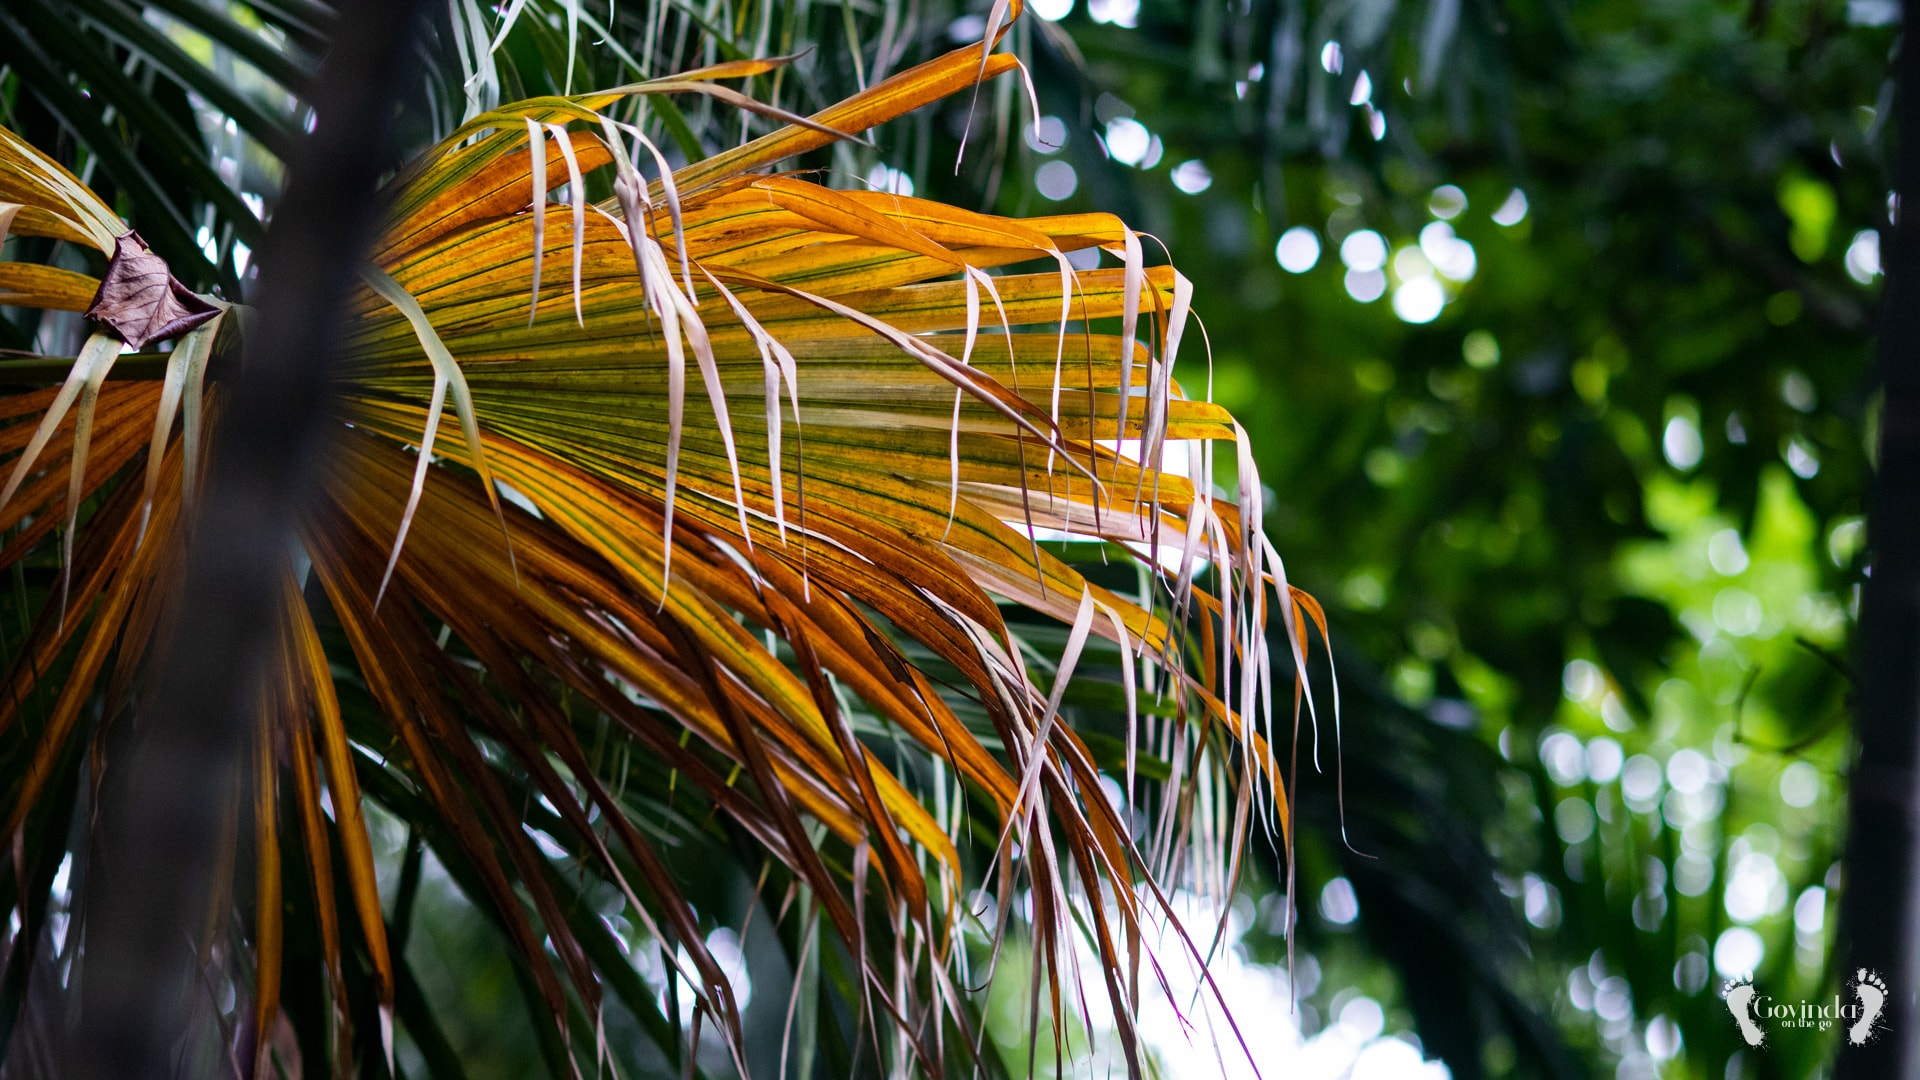 Dry palm leaves in Botanical Garden Mauritius